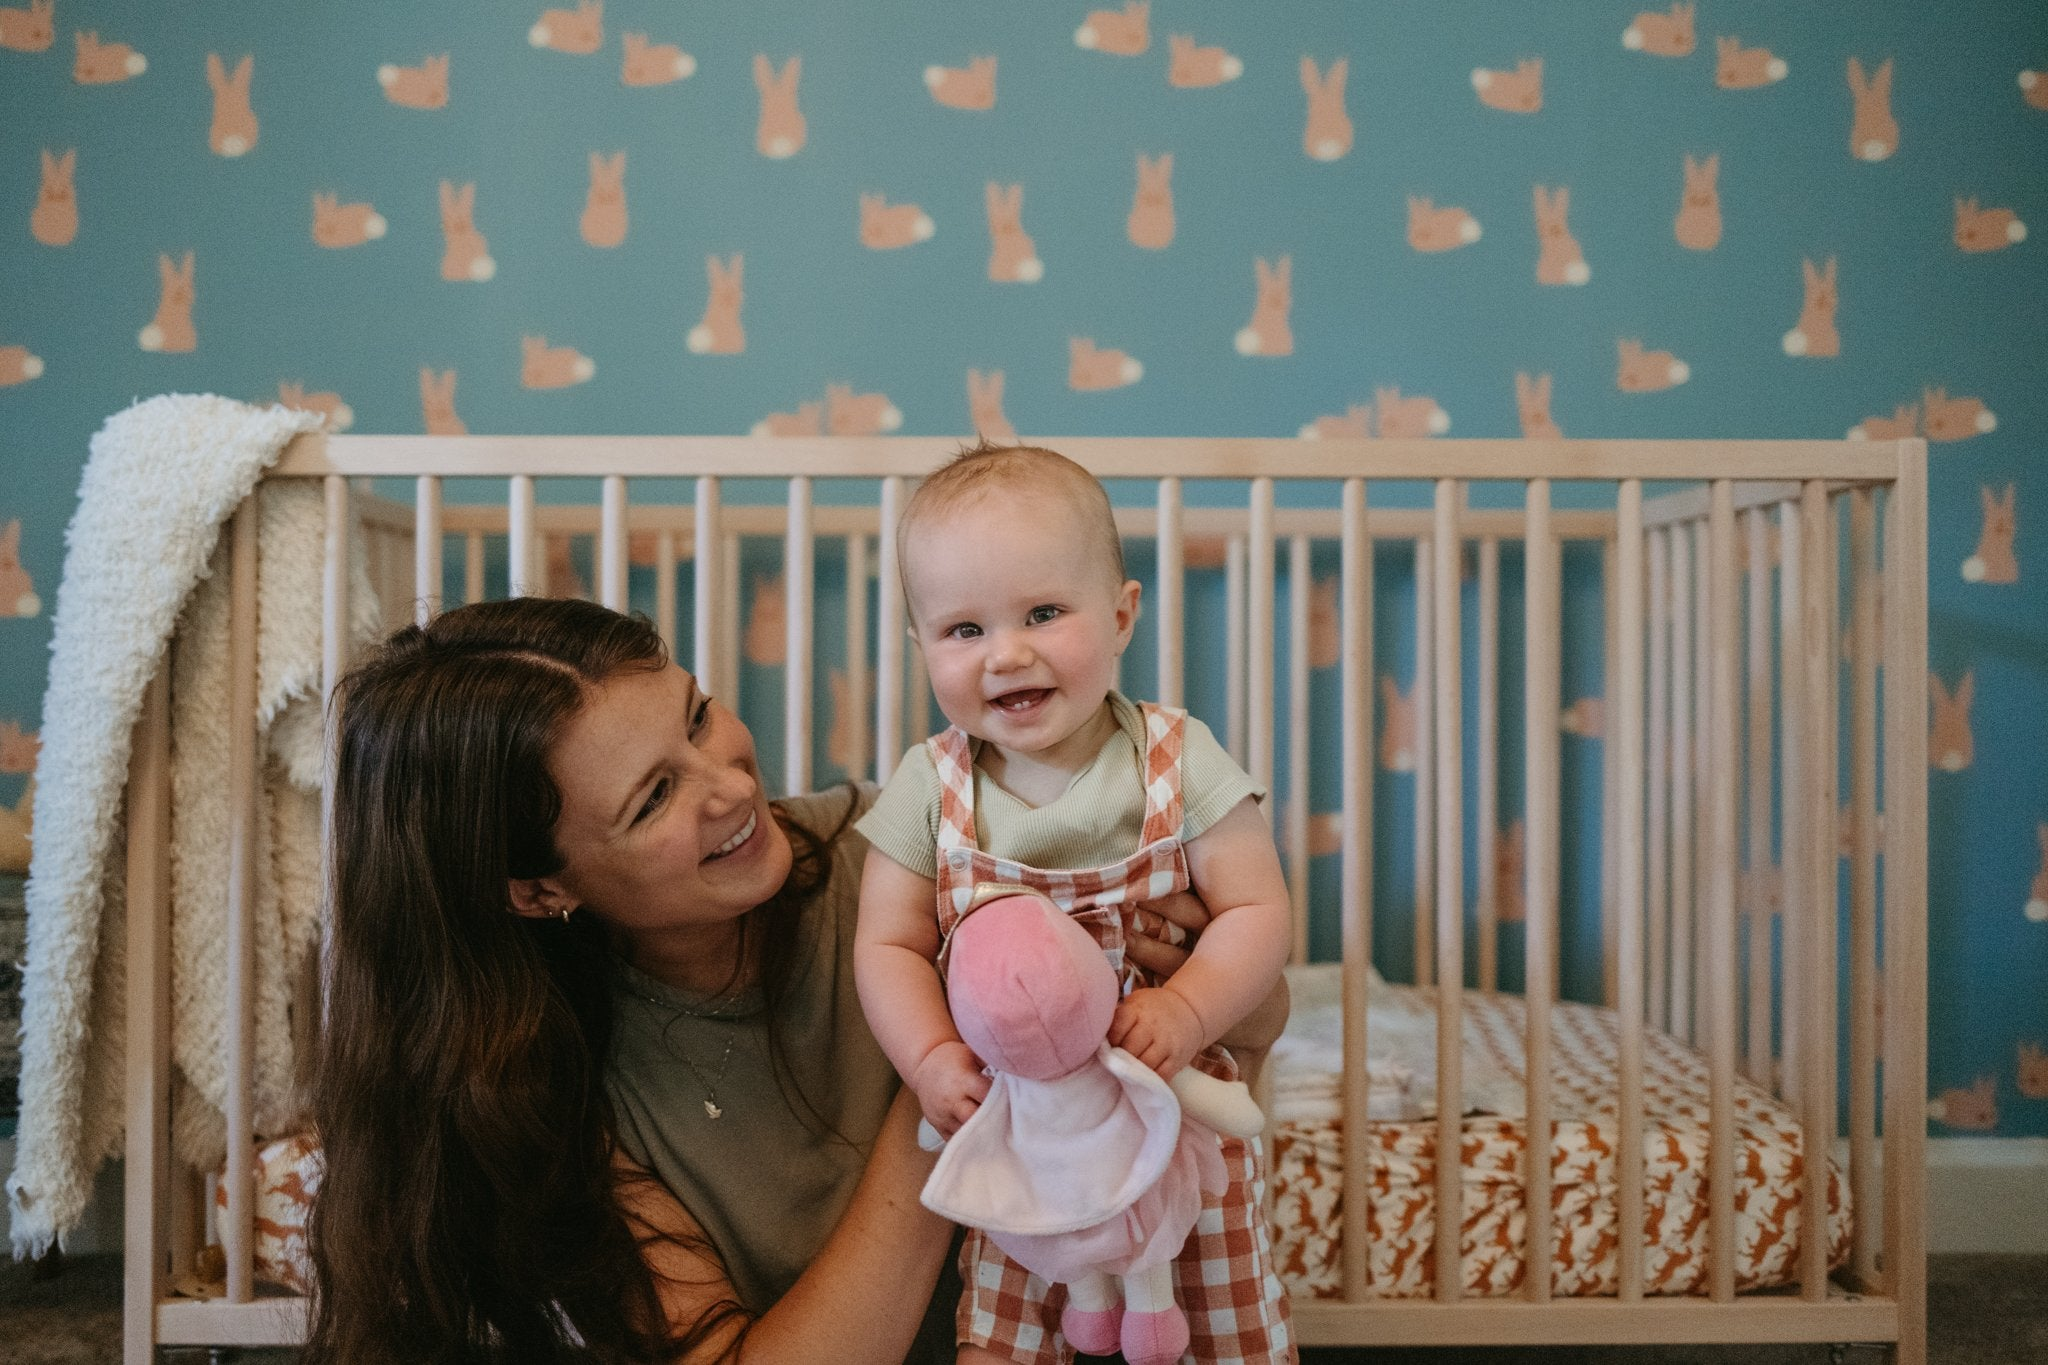 Richele smiling at and holding her daughter in her nursery, featuring bunny Anewall wallpaper